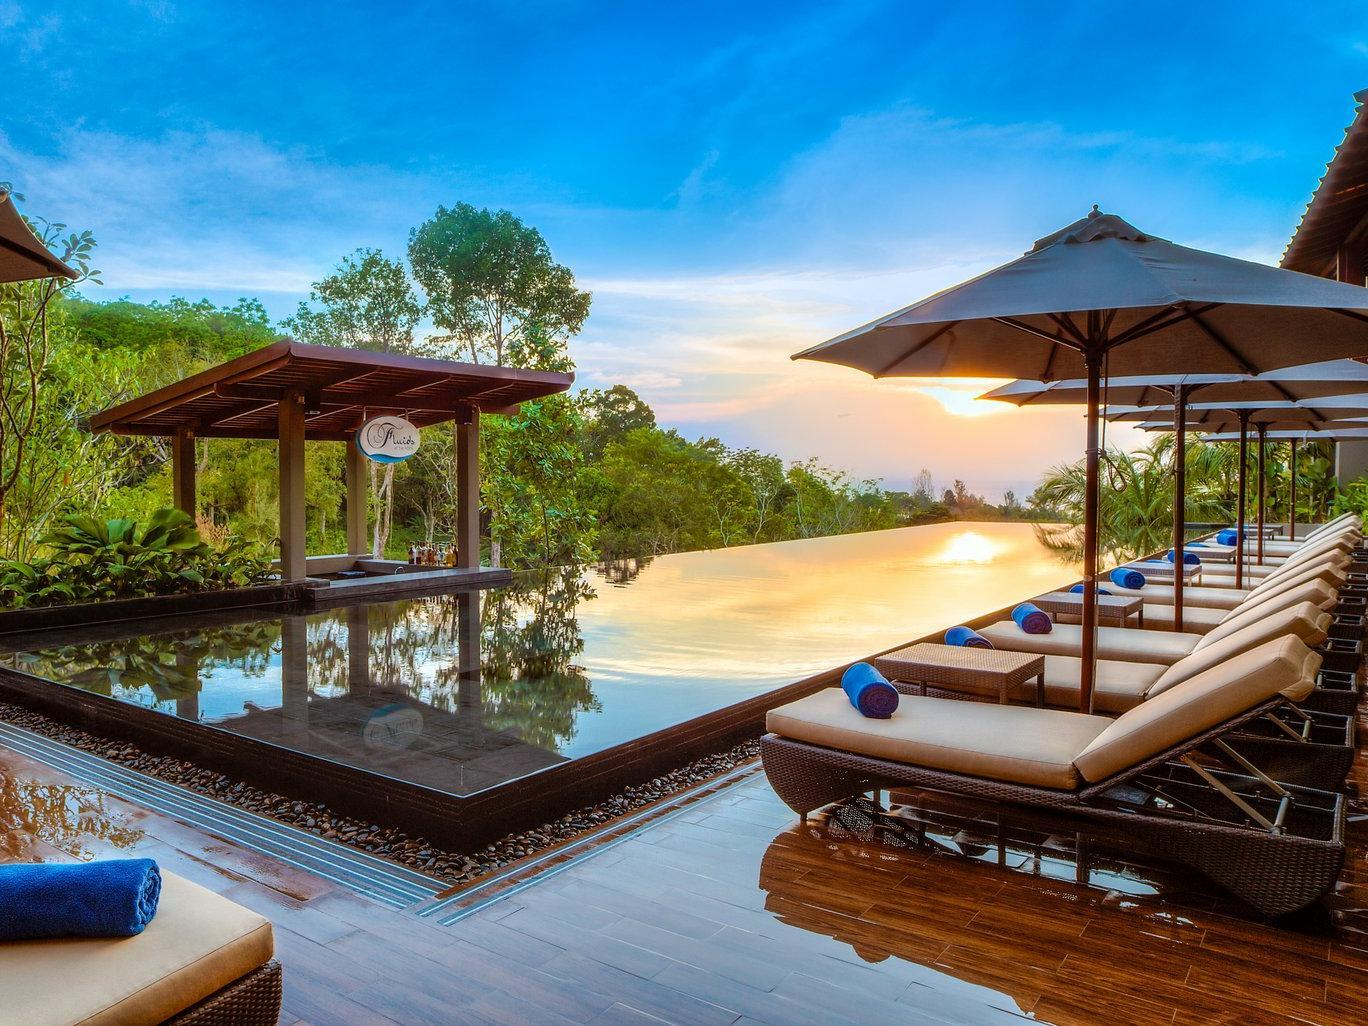 Avista Hideaway Resort & Spa Phuket ภูเก็ต